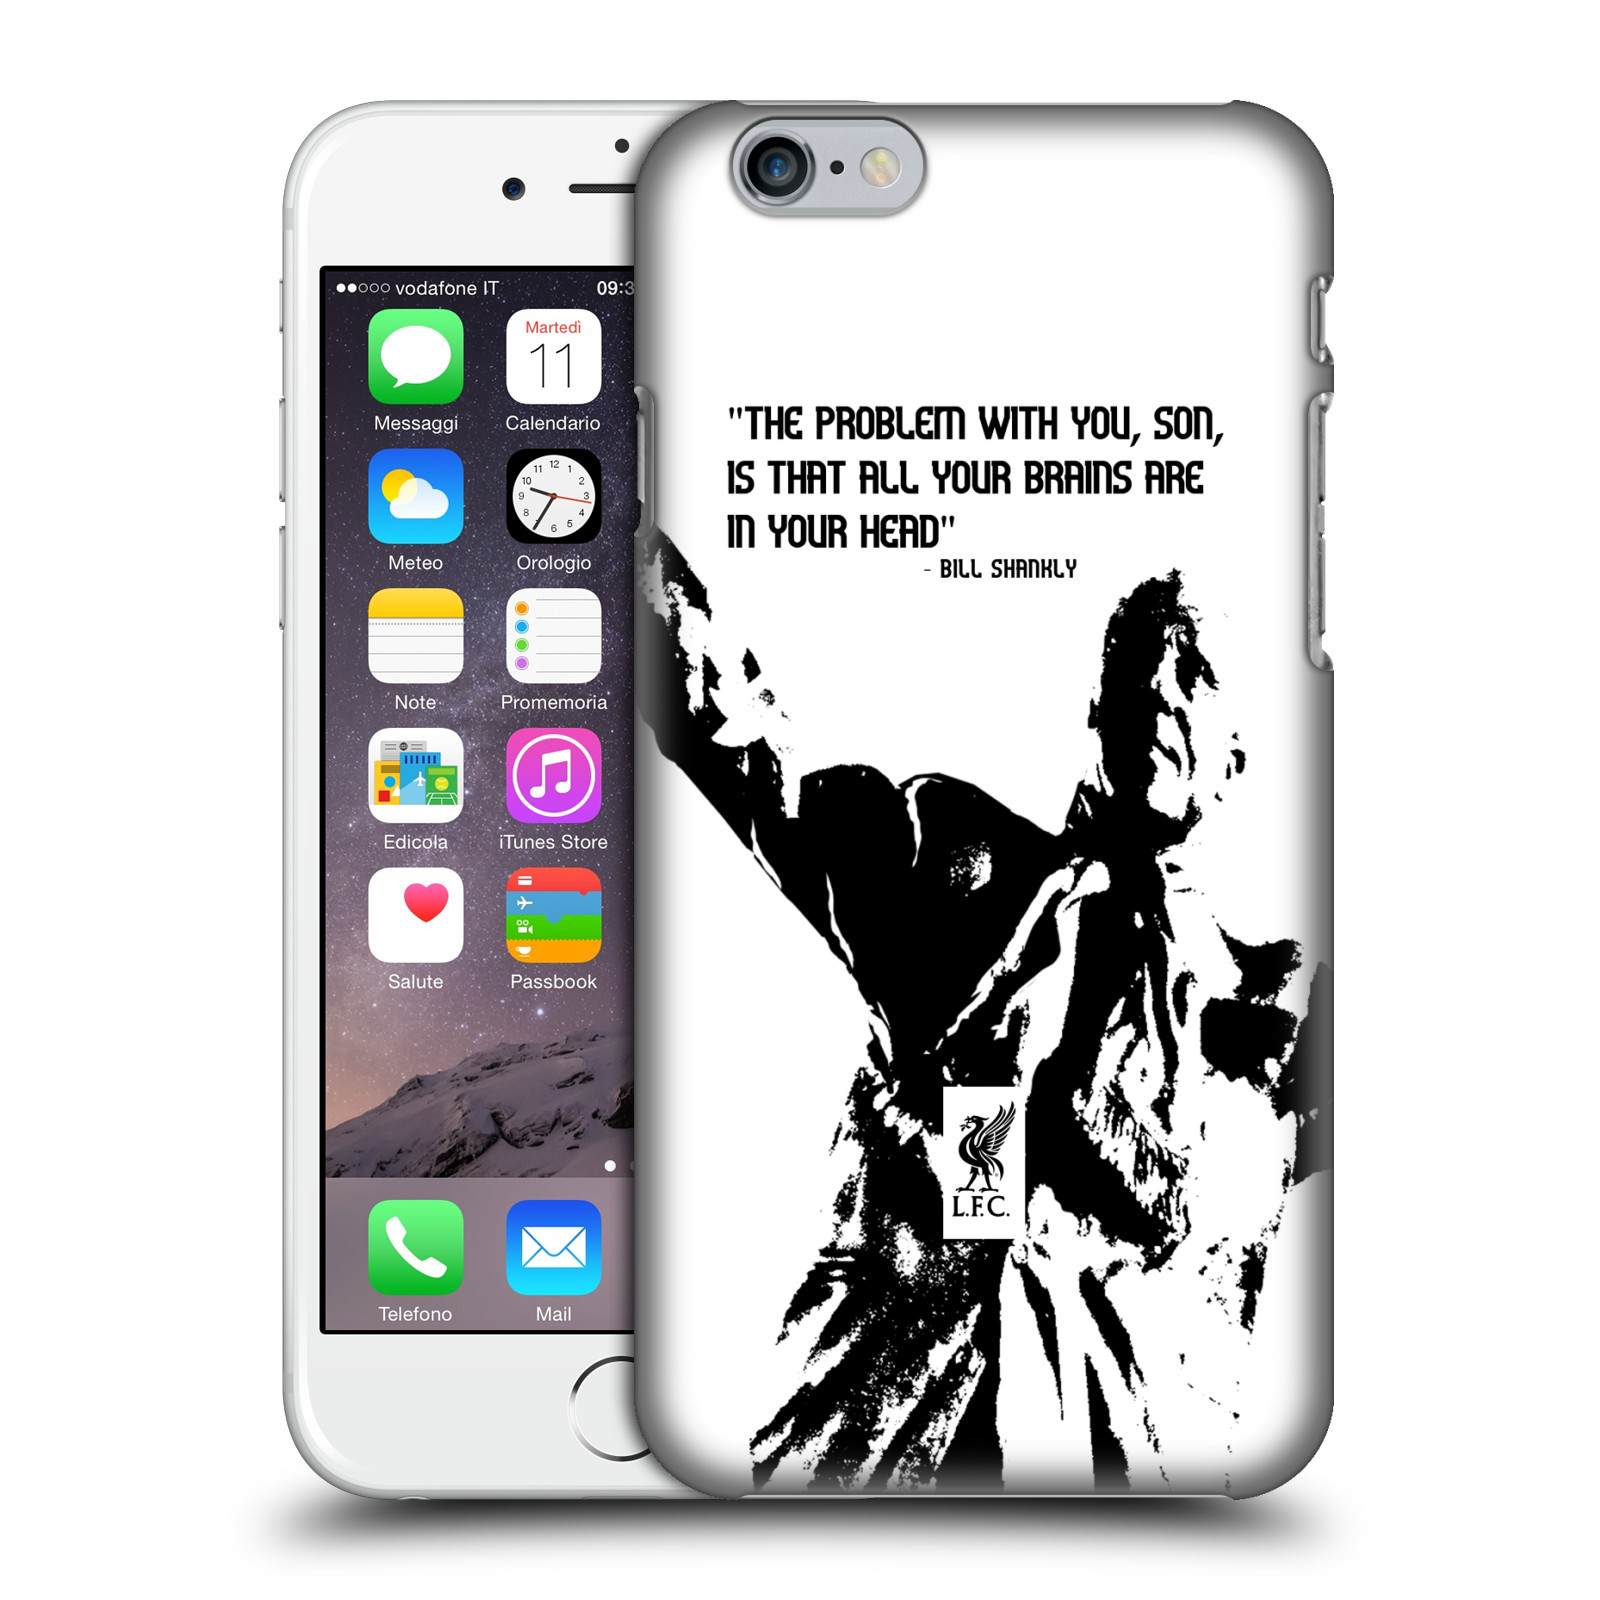 Liverpool FC LFC Bill Shankly Quotes-Problem White